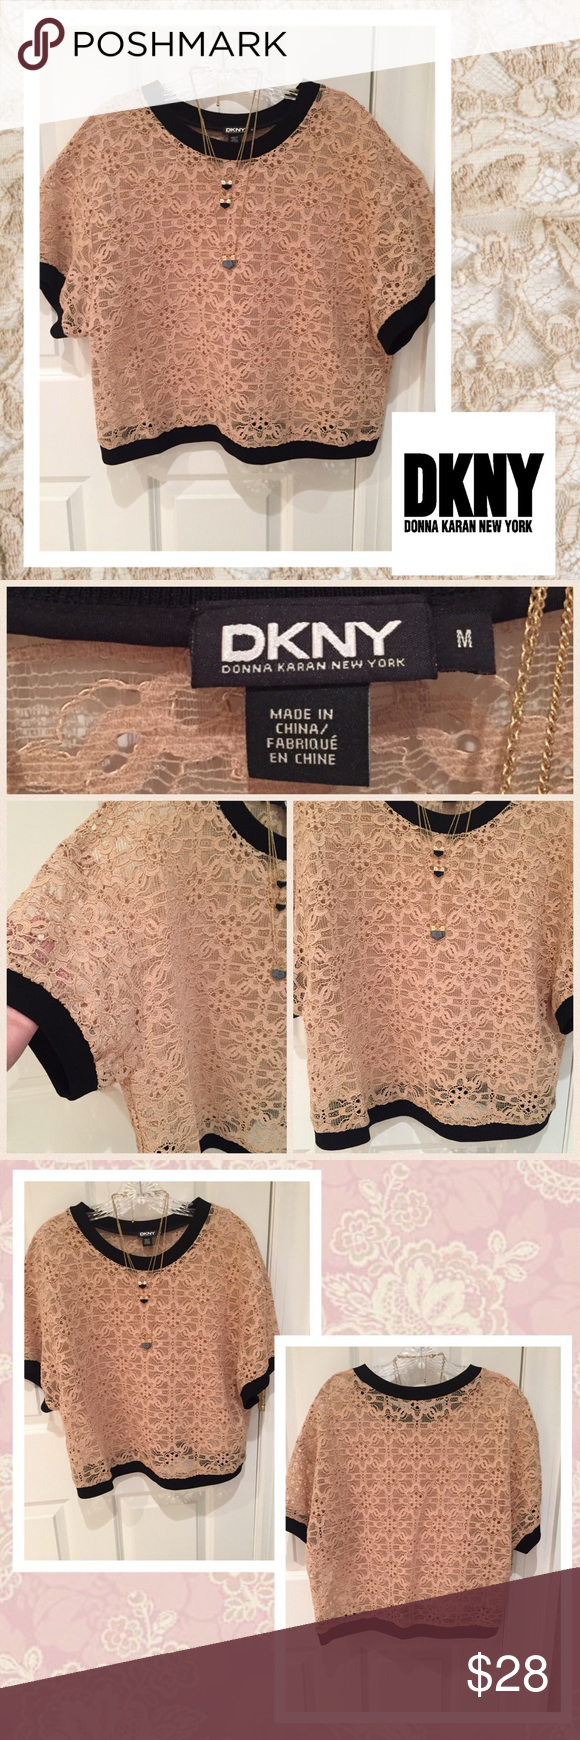 🌼DKNY illusion lace top🌼 Beige lace illusion top. Has a boxy look. Needs a tank underneath. Black banded on bottom, neckline, and at end of sleeves. Excellent condition. DKNY Tops Tees - Short Sleeve